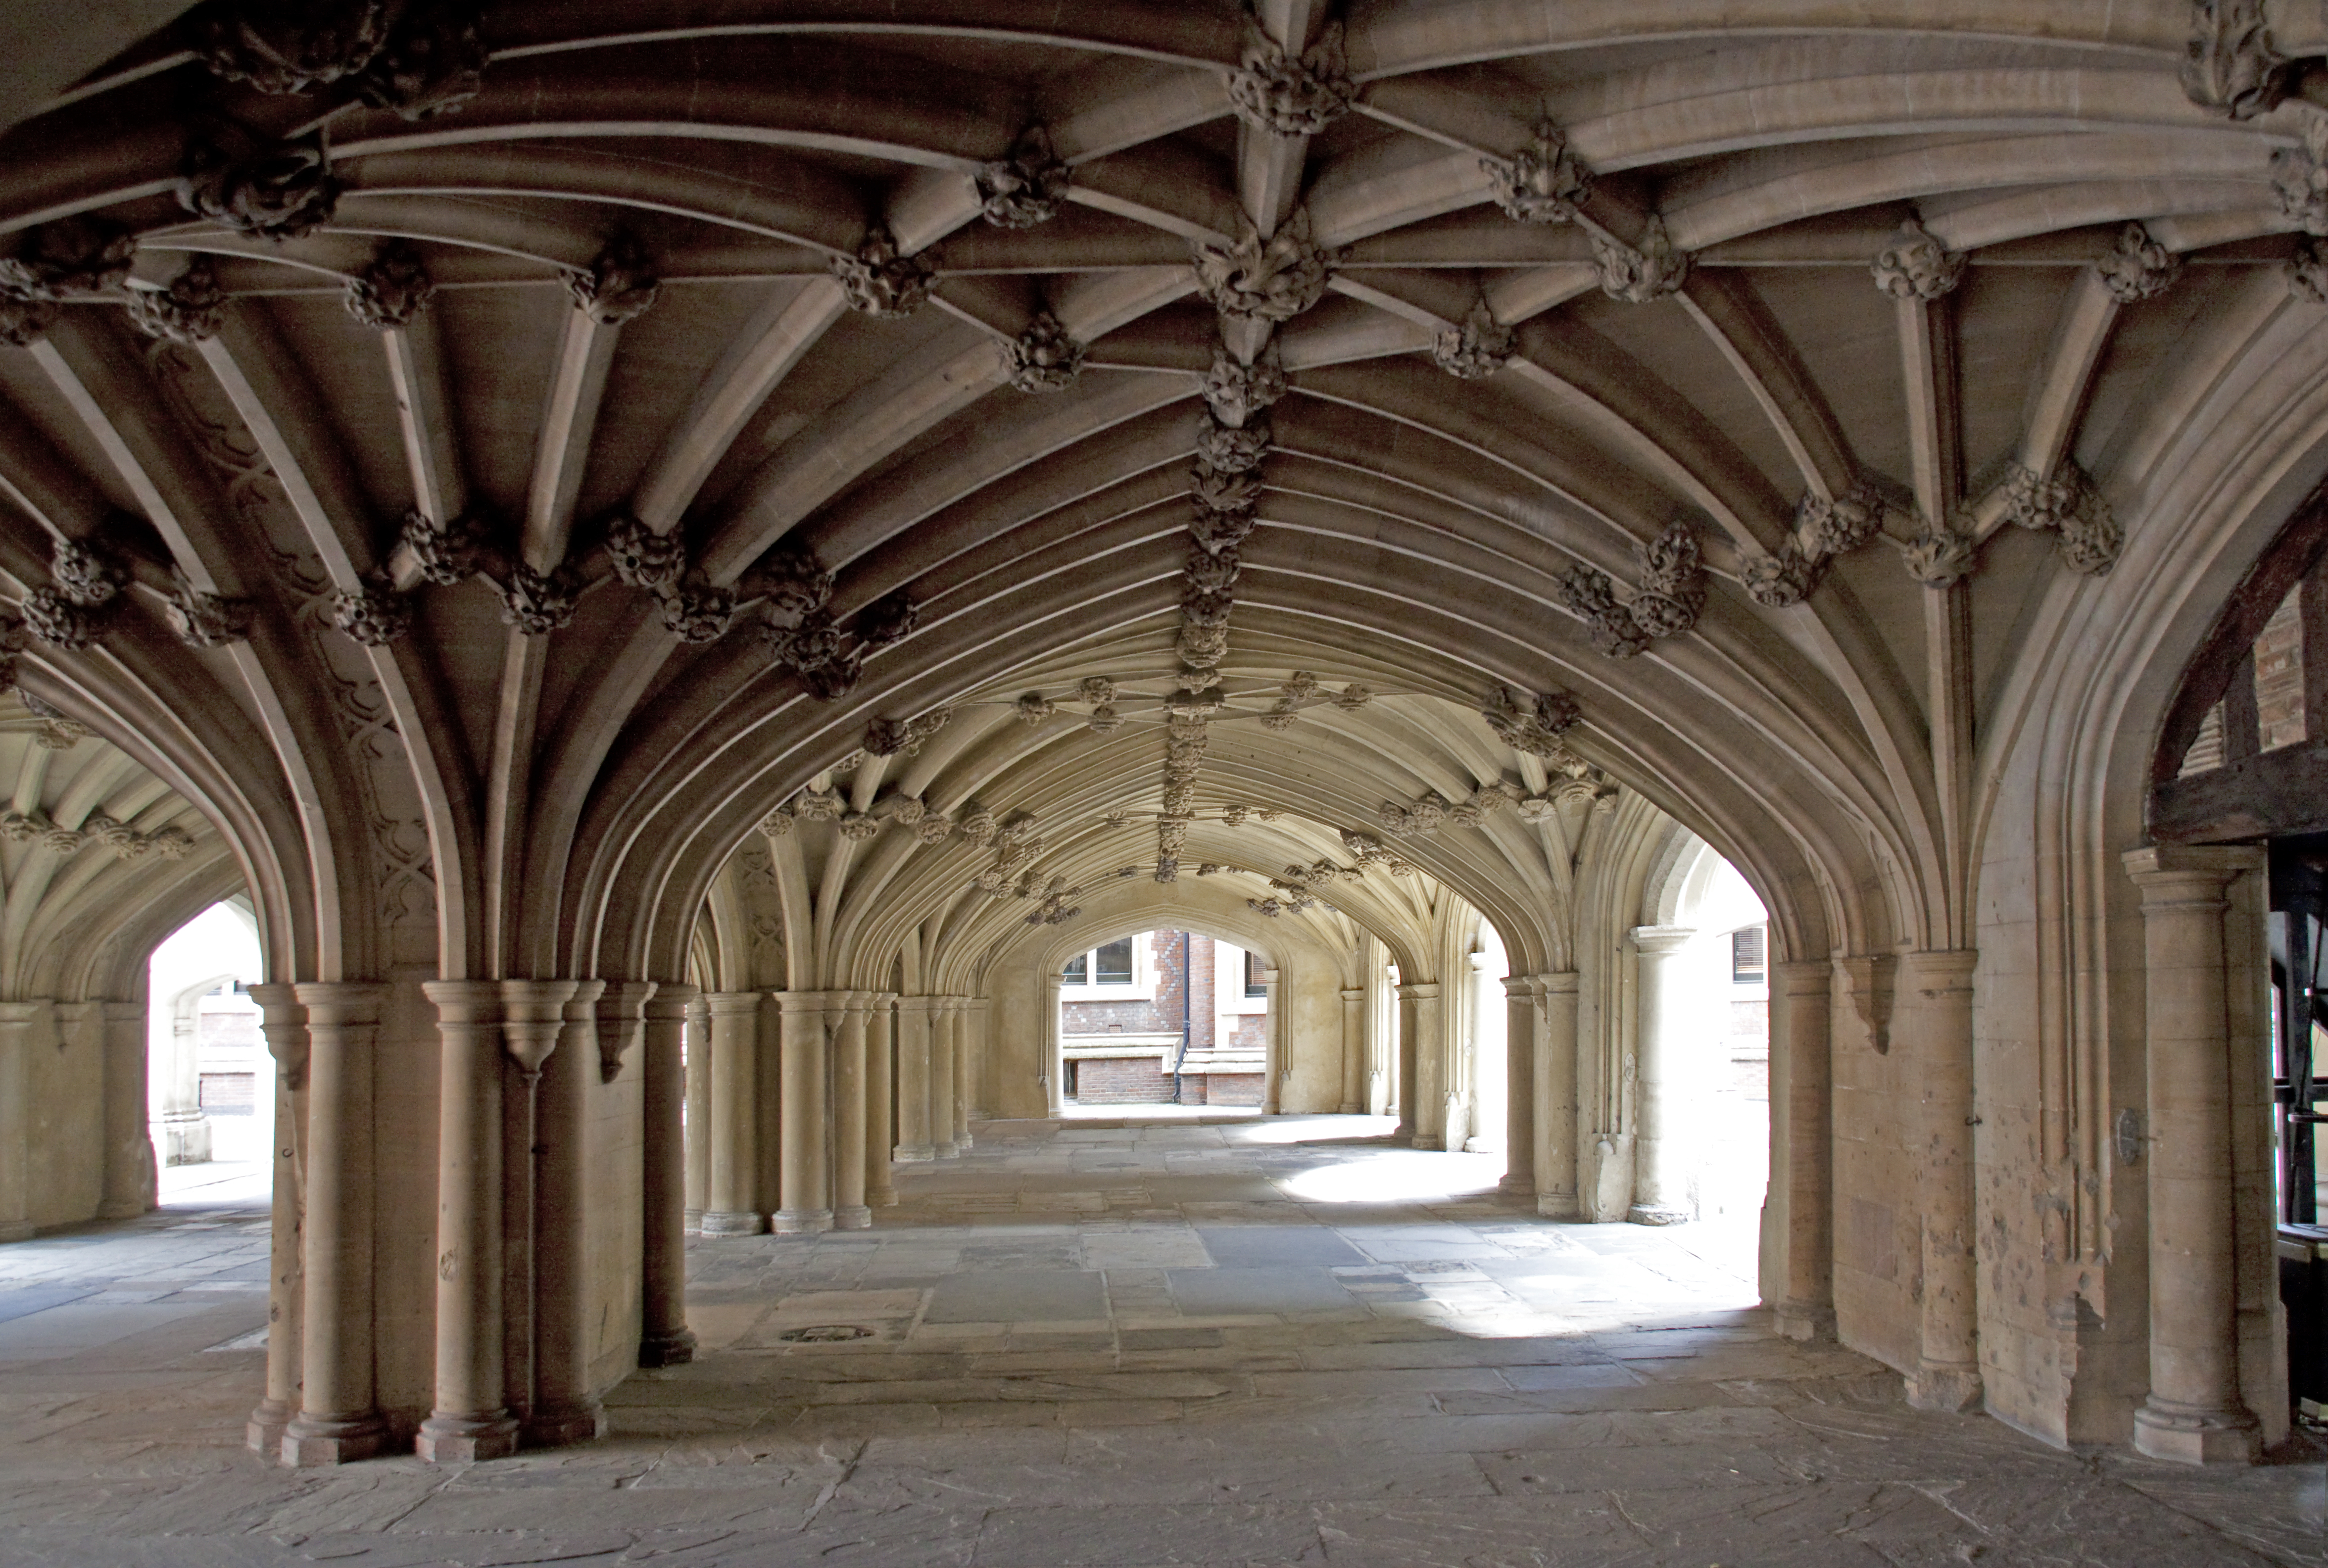 Description Lincolns Inn Vaulted Ceiling 1 (4875999395).jpg